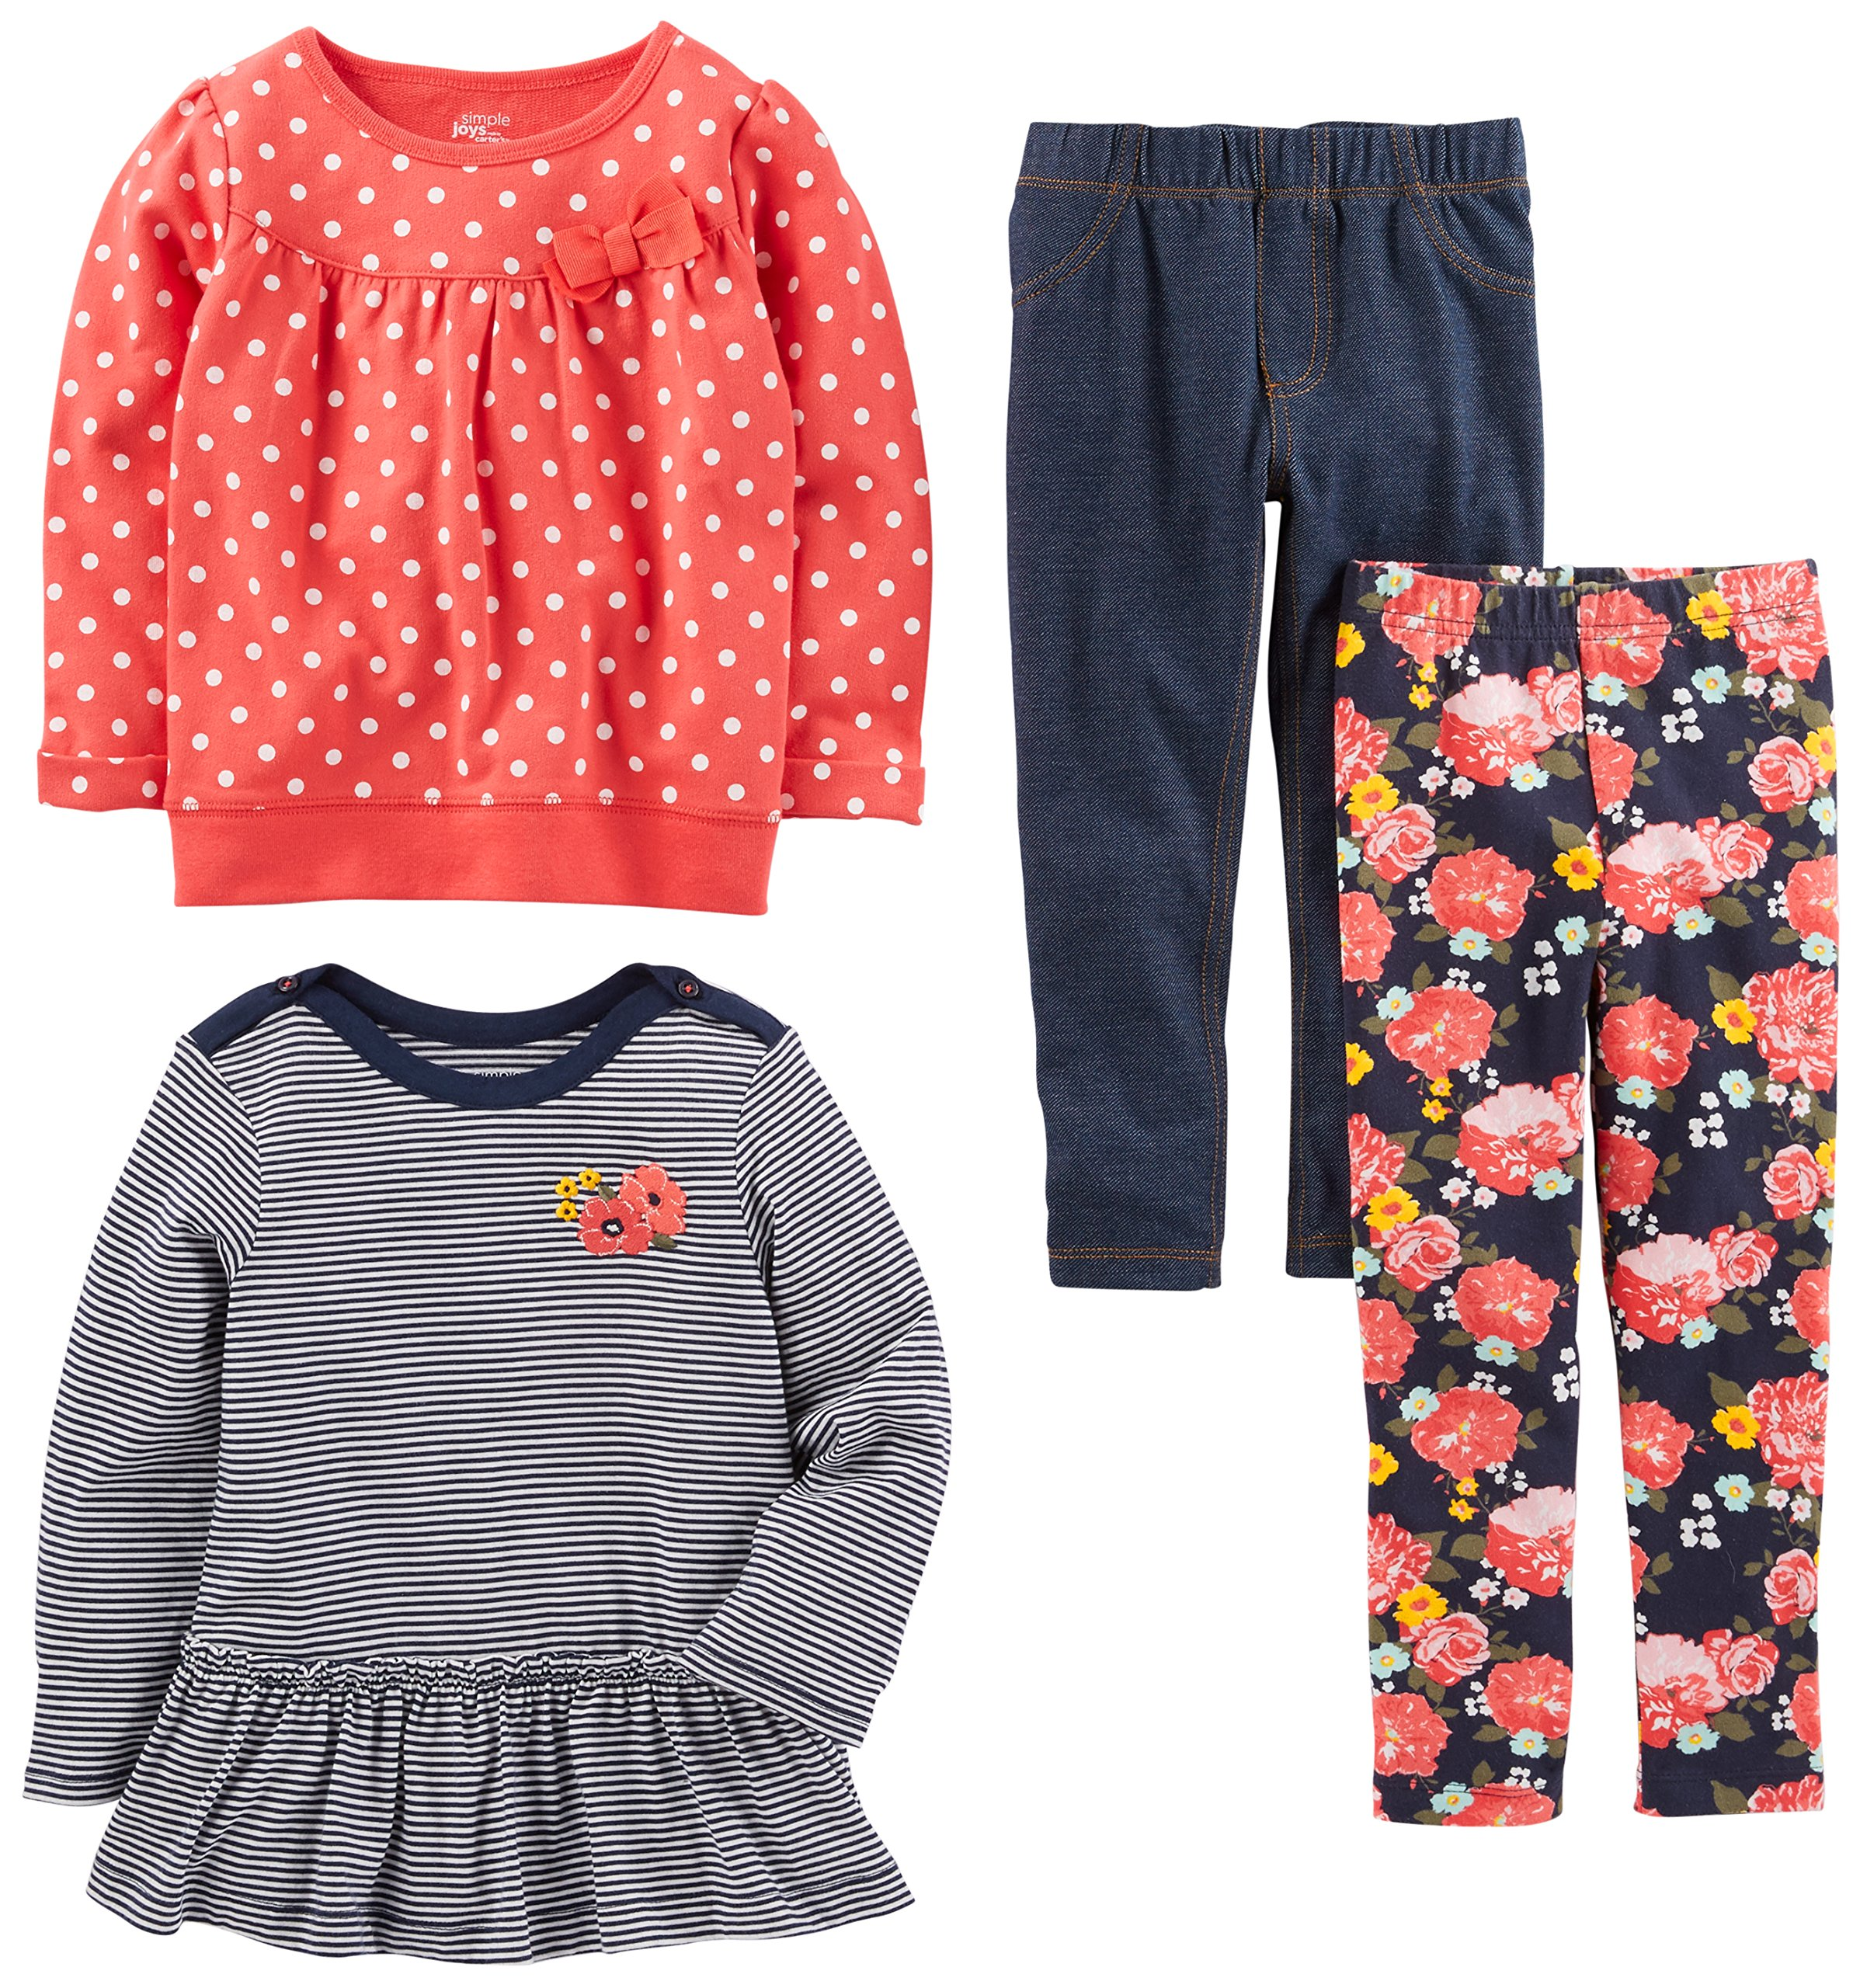 3254f3f58 Best Rated in Girls  Clothing   Helpful Customer Reviews - Amazon.com